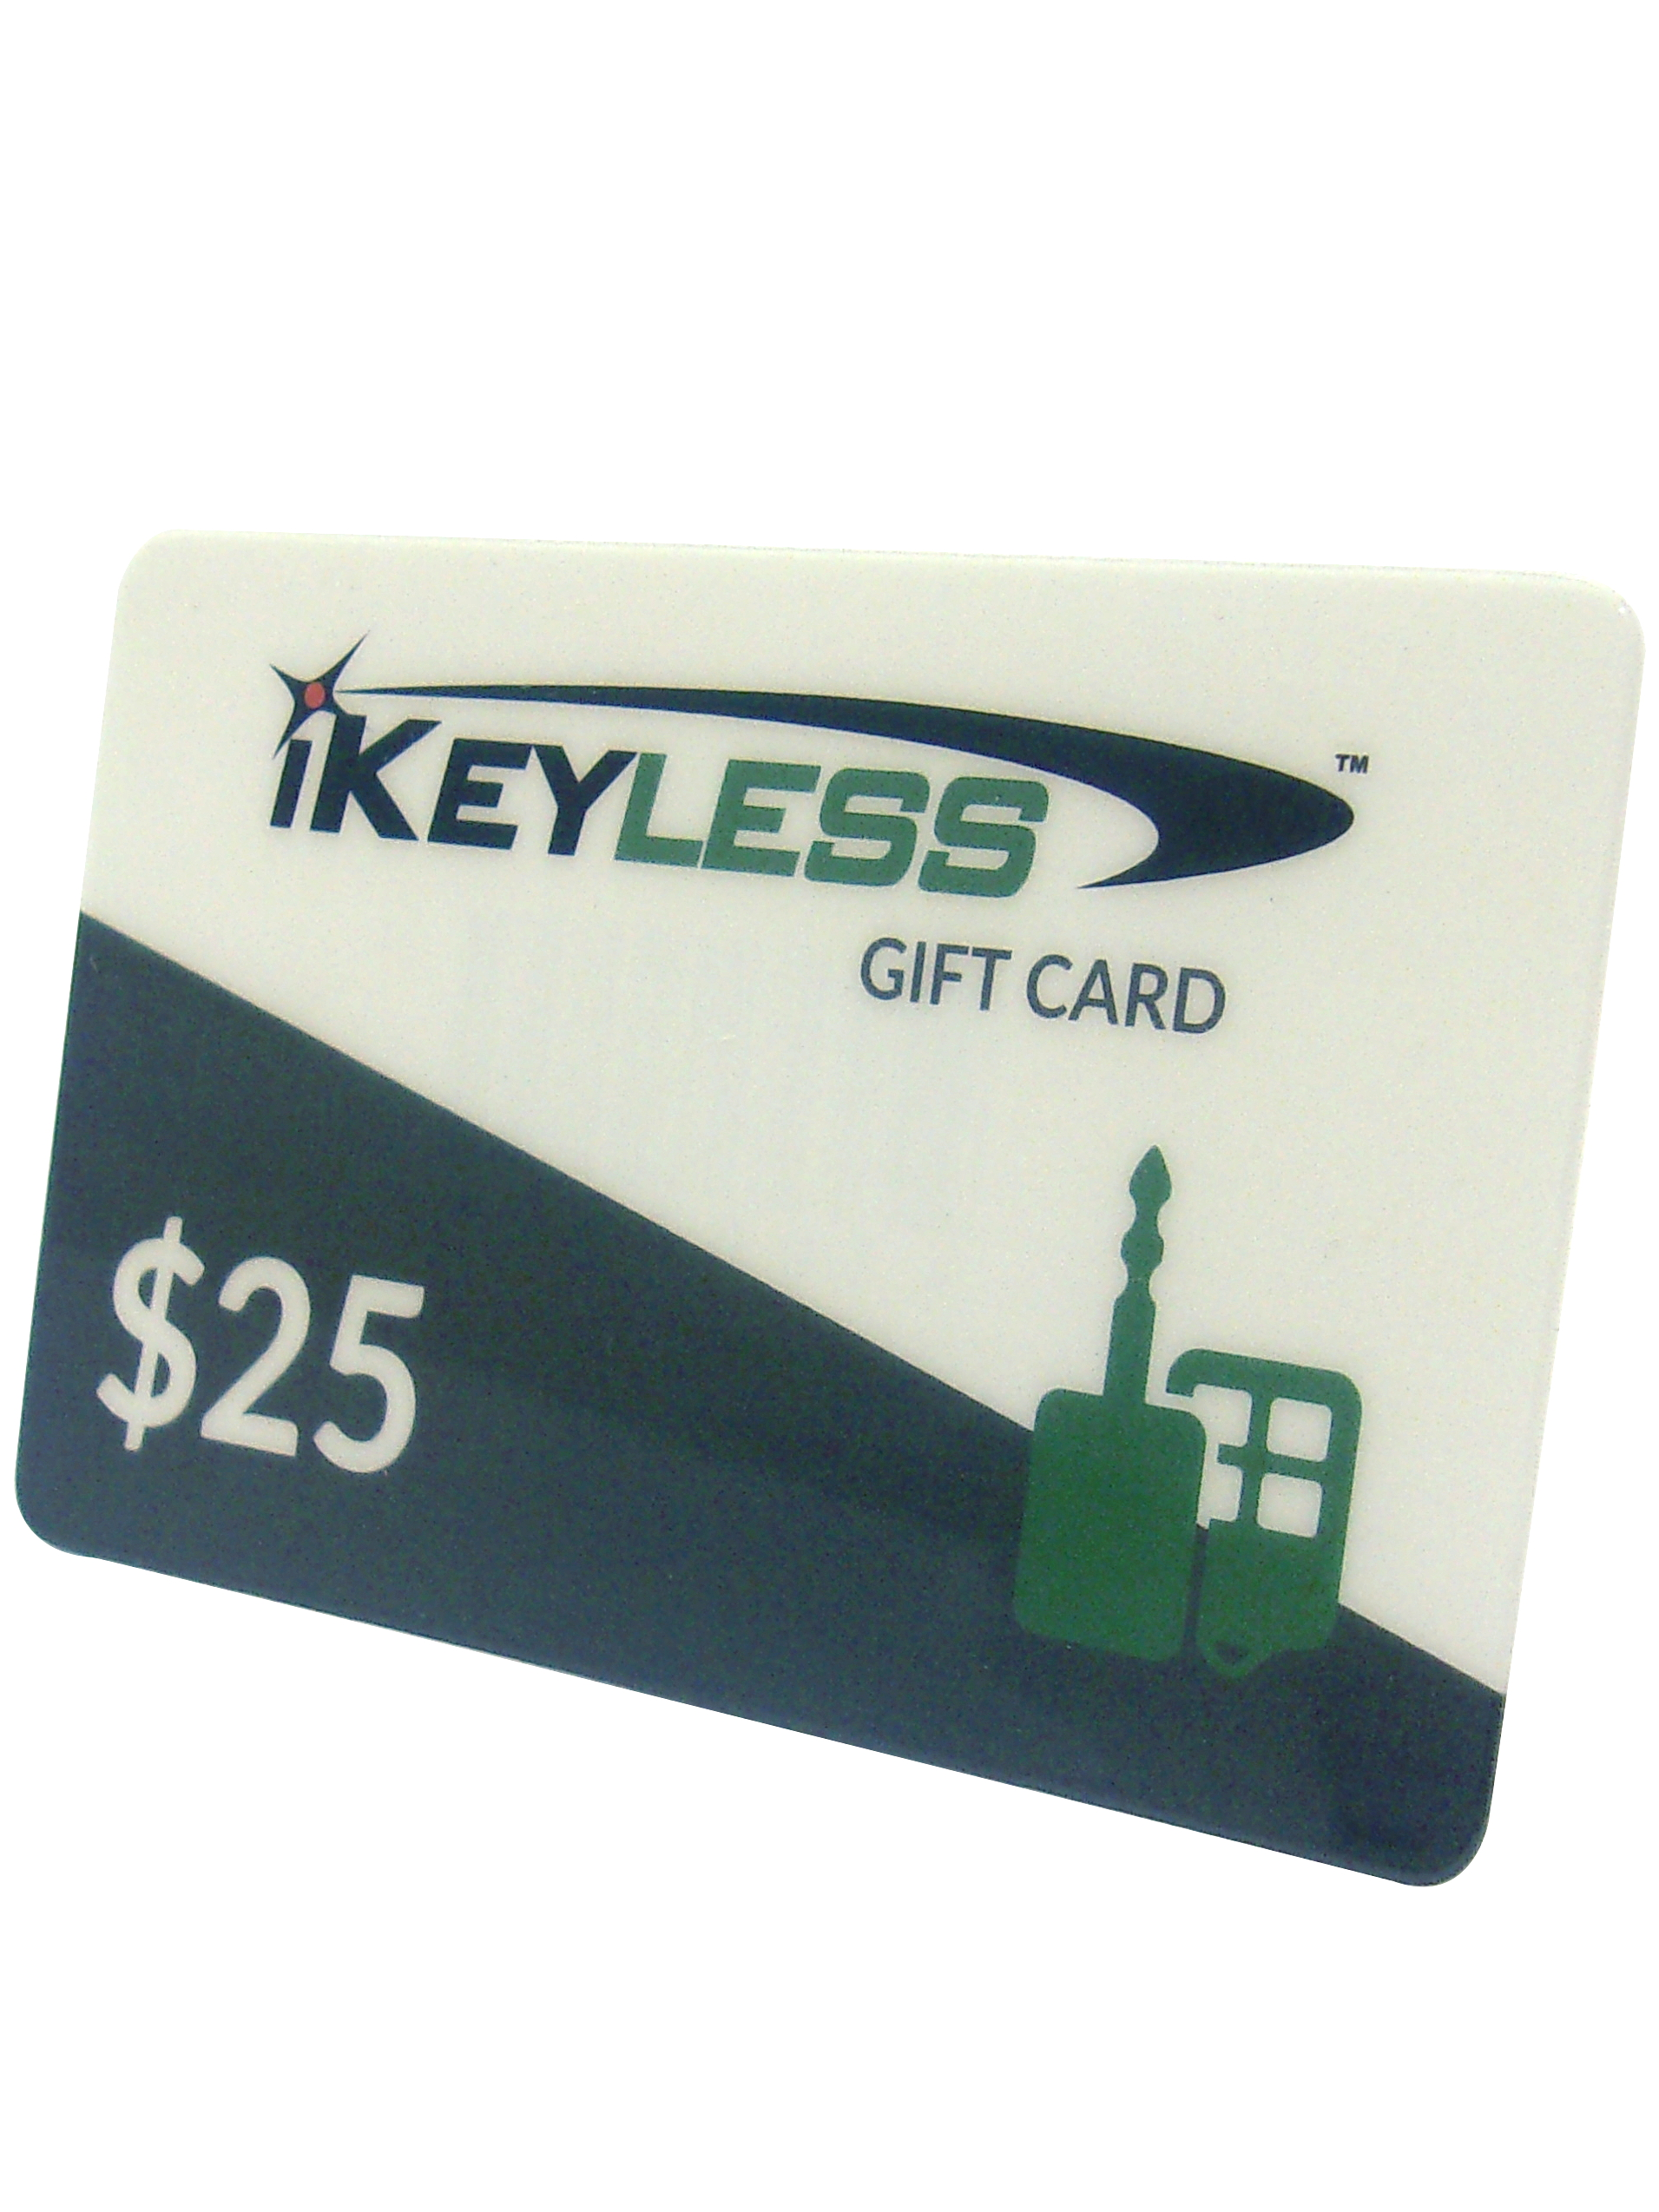 Car Keys Express.com $25 Gift Card - The Perfect Gift